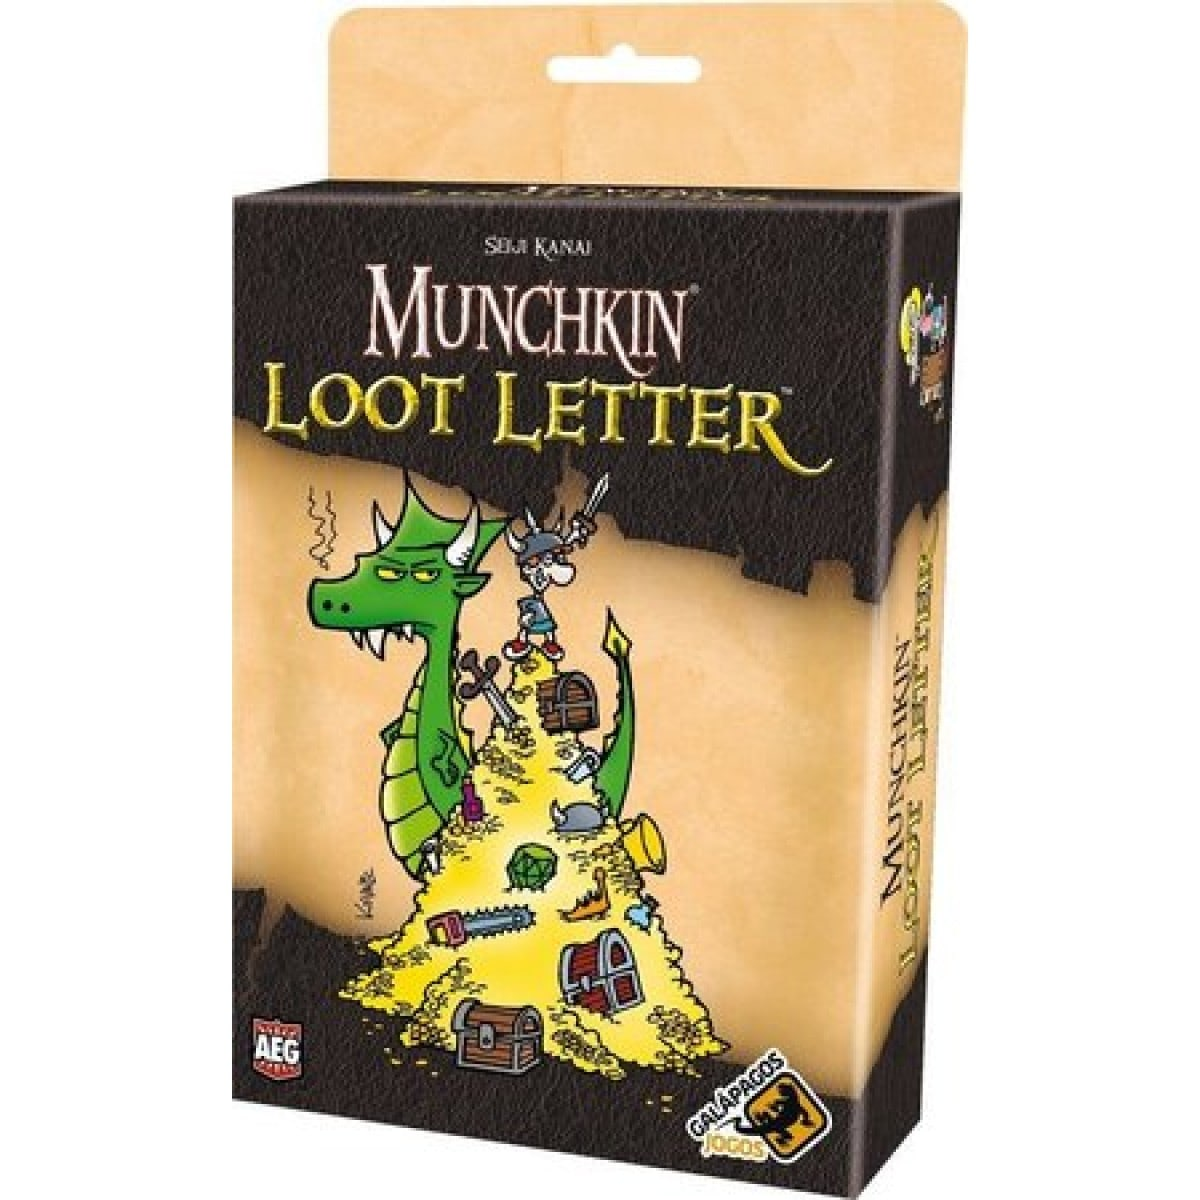 Munchkin Loot Letter Galapagos MUL001  - Place Games